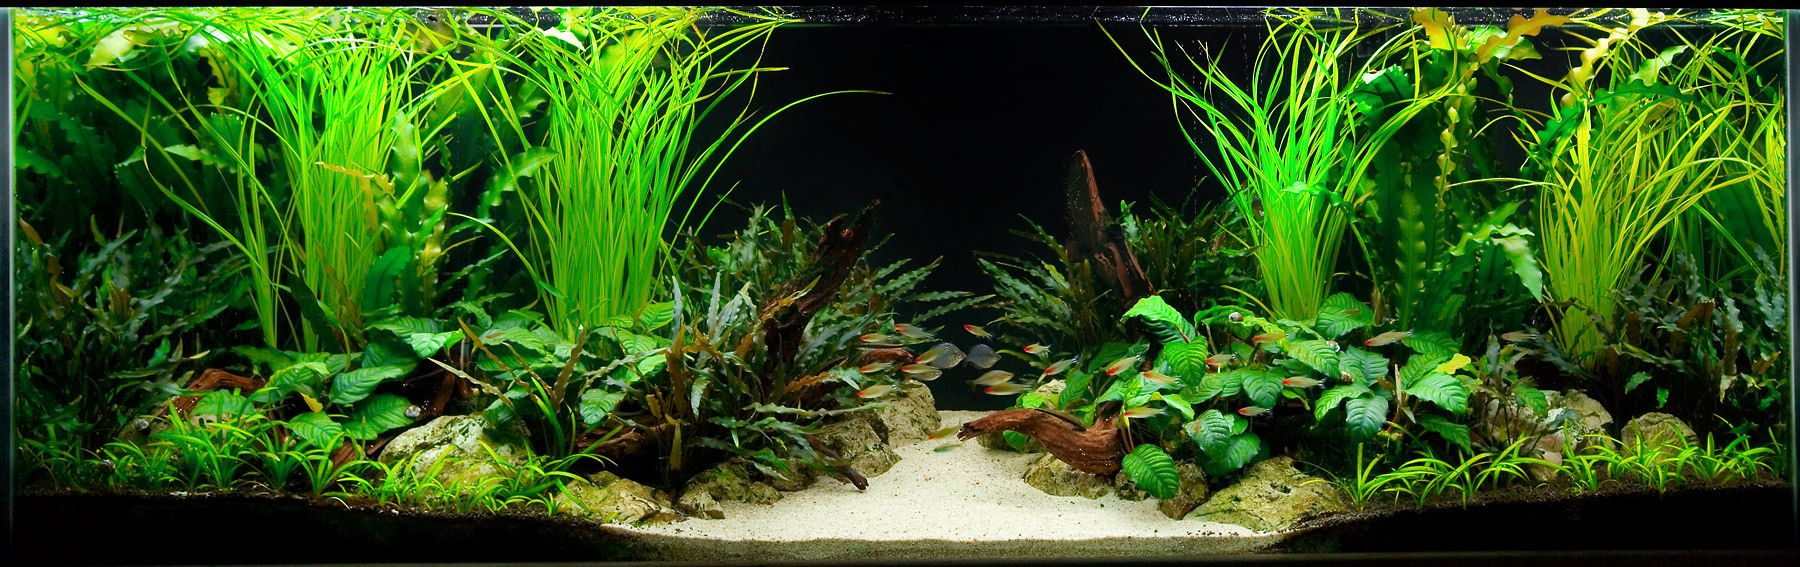 Aquarium design group a two sided live planted aquarium for Fish tank with plants on top